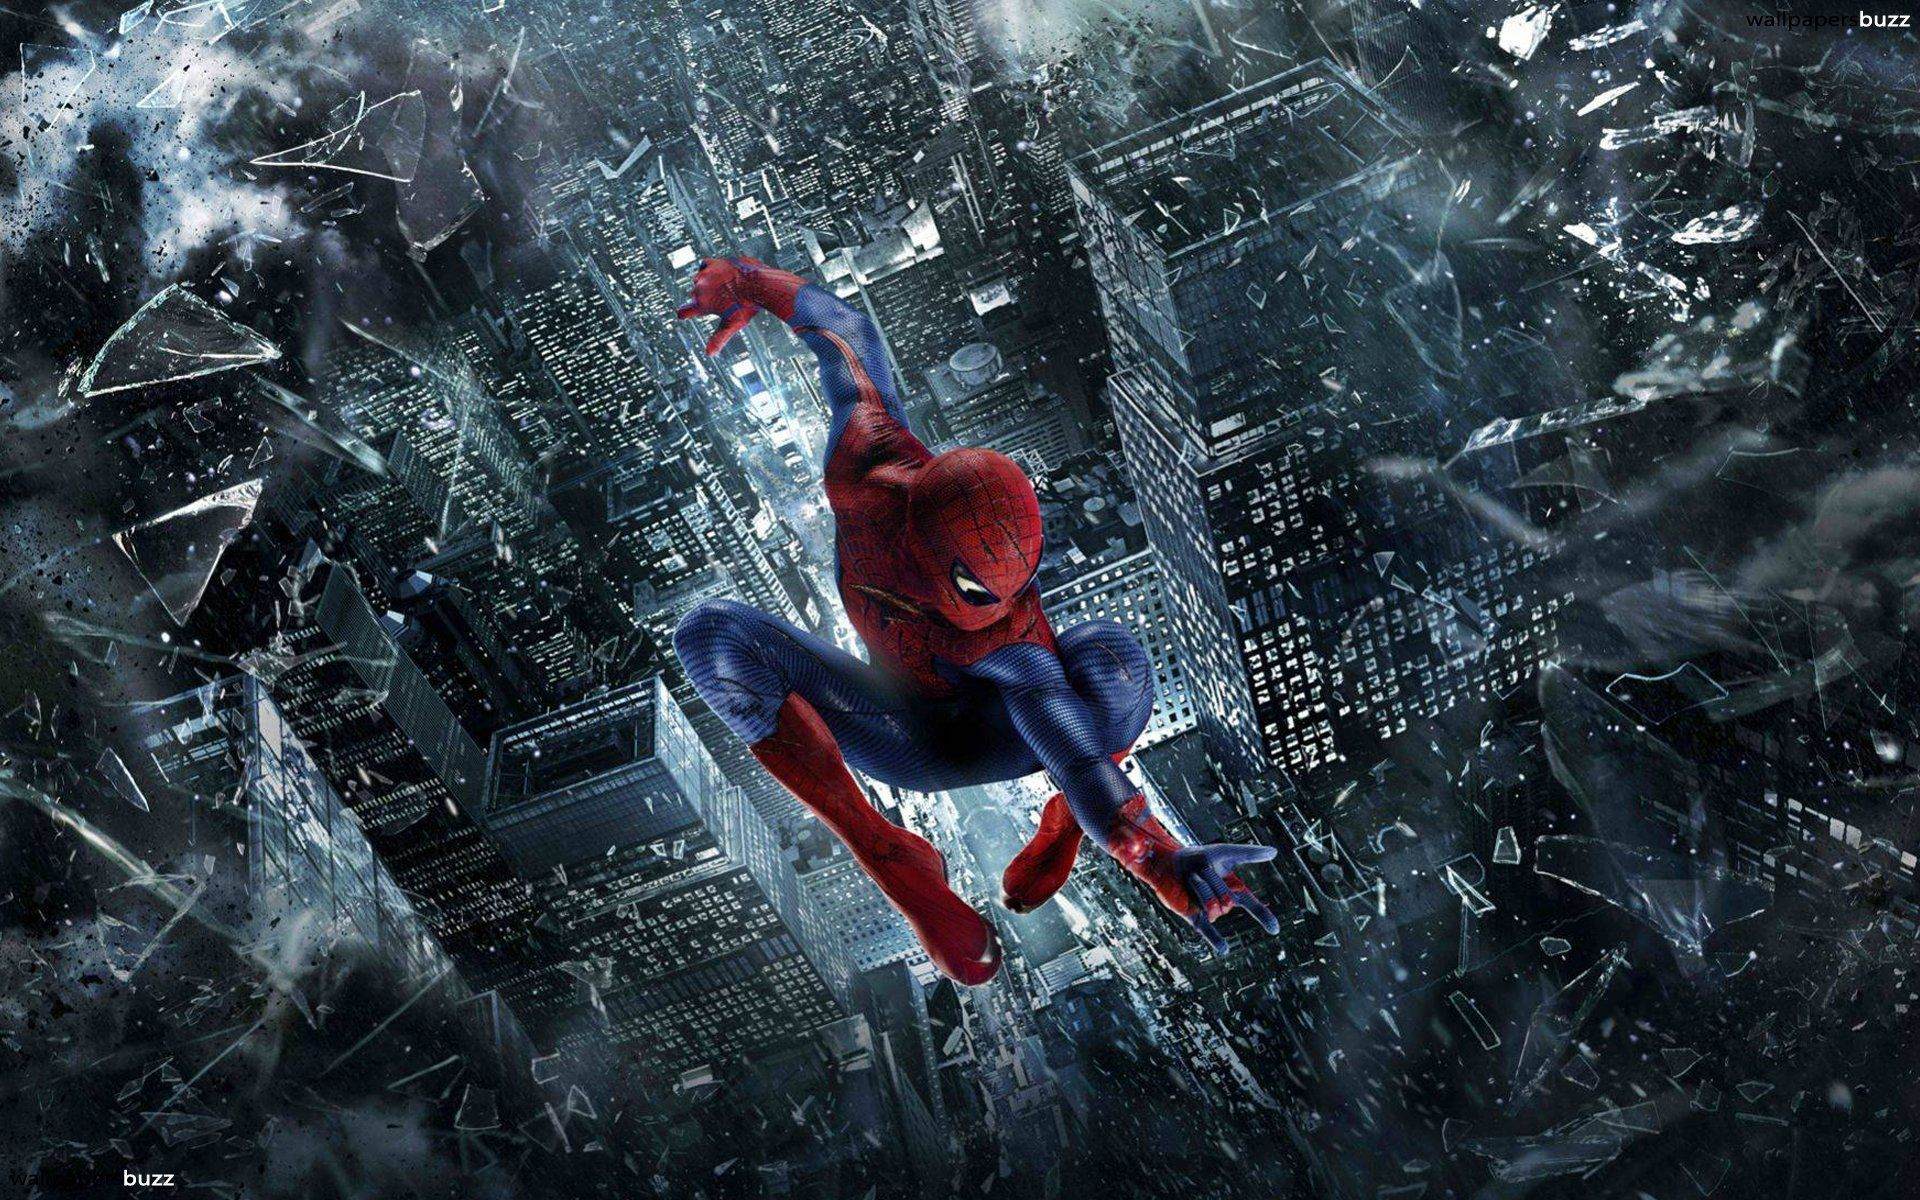 spiderman wallpaper in hd #15